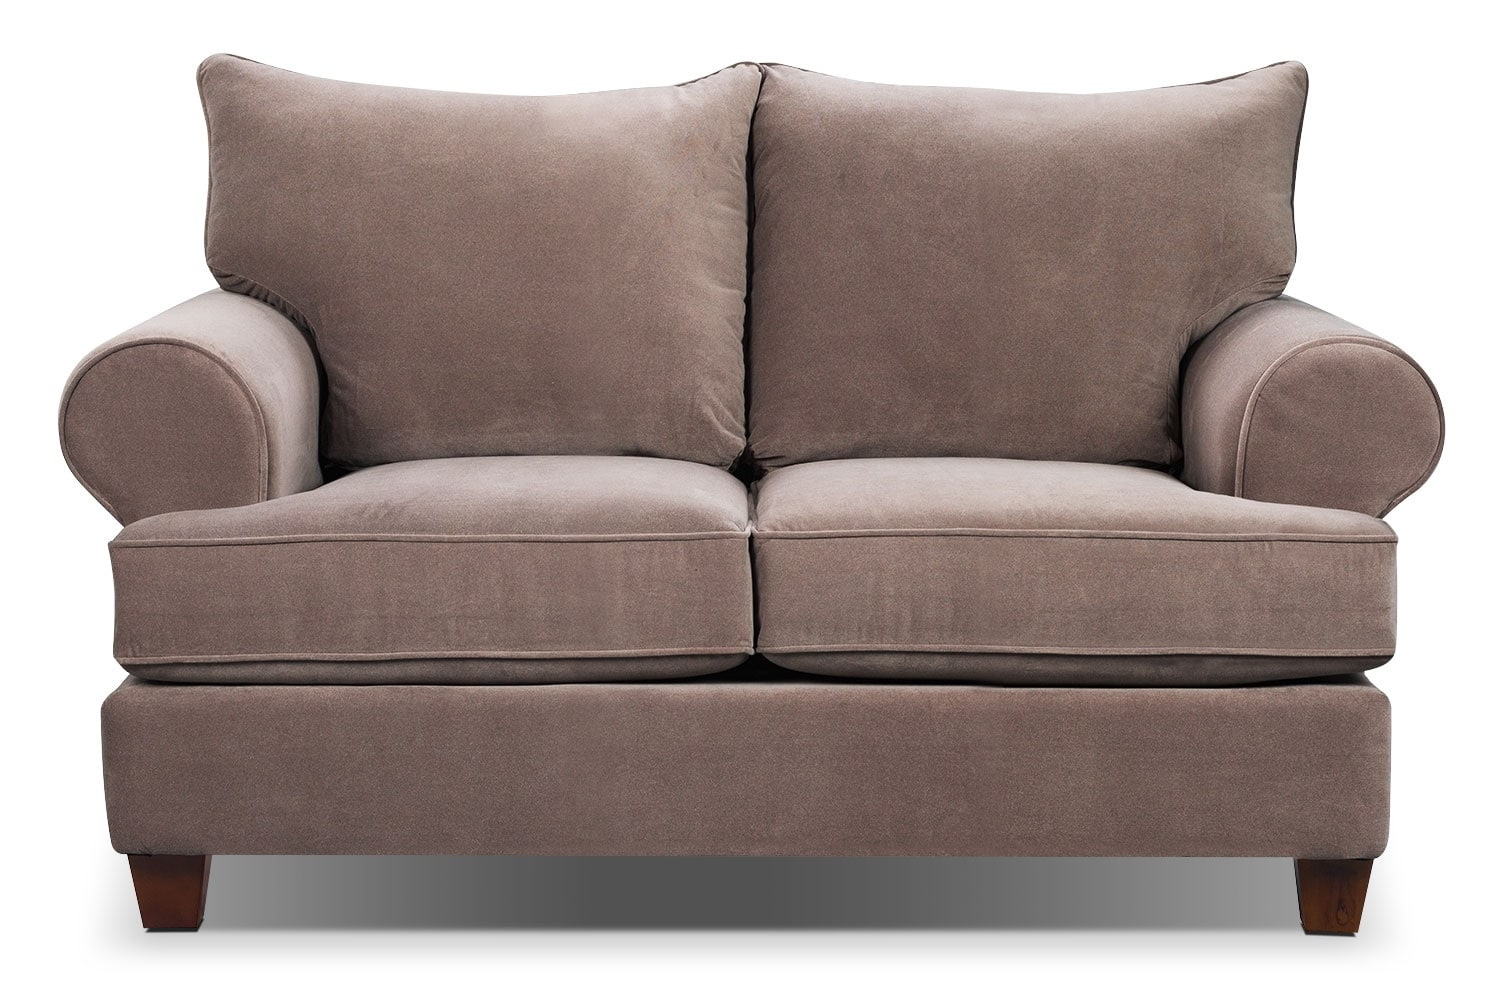 Paige Microsuede Loveseat - Stone